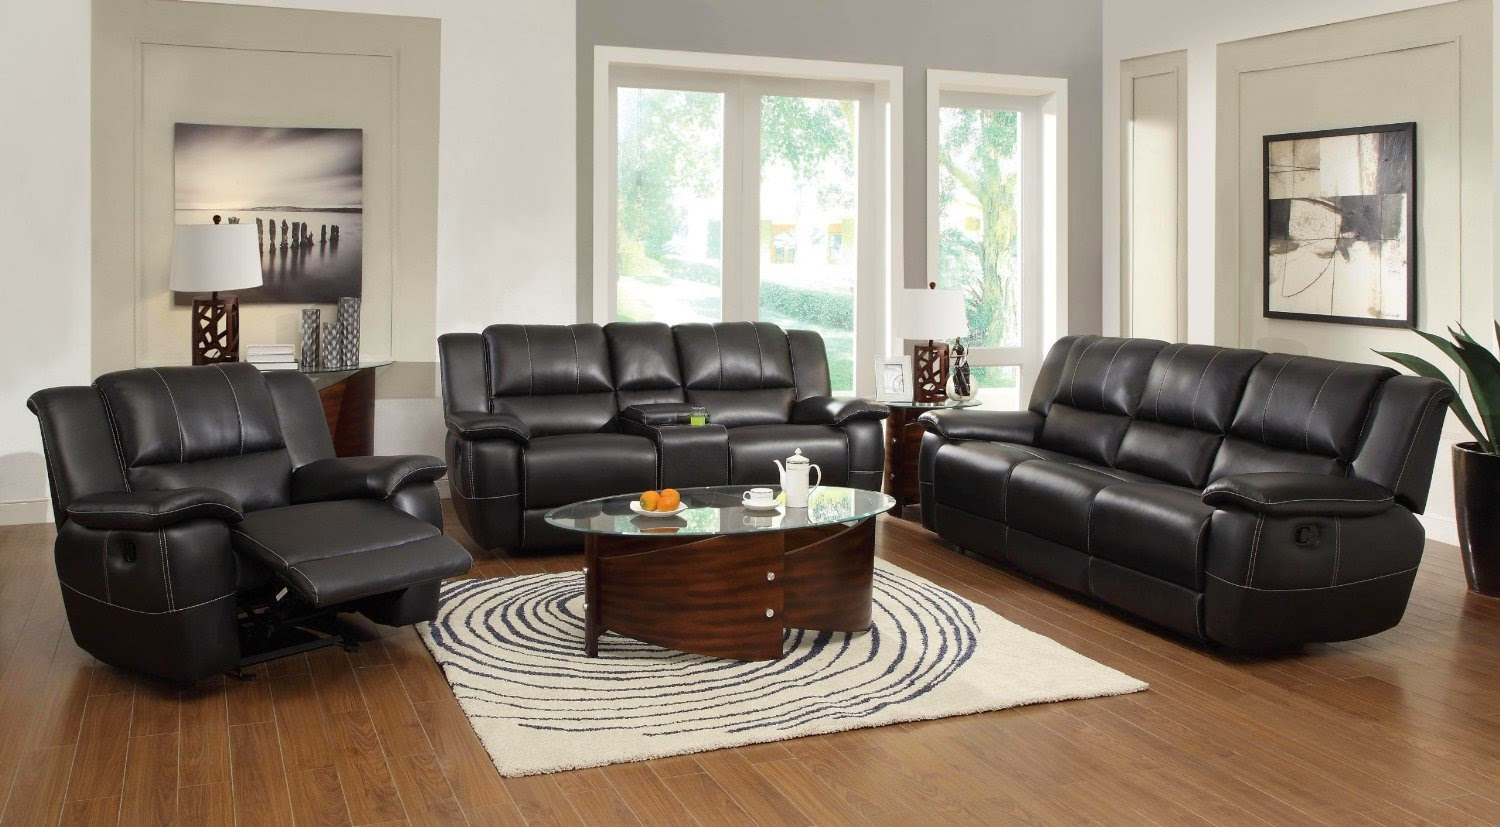 Coaster Home Power Reclining Leather Sofa Reviews : power reclining sofa set - islam-shia.org